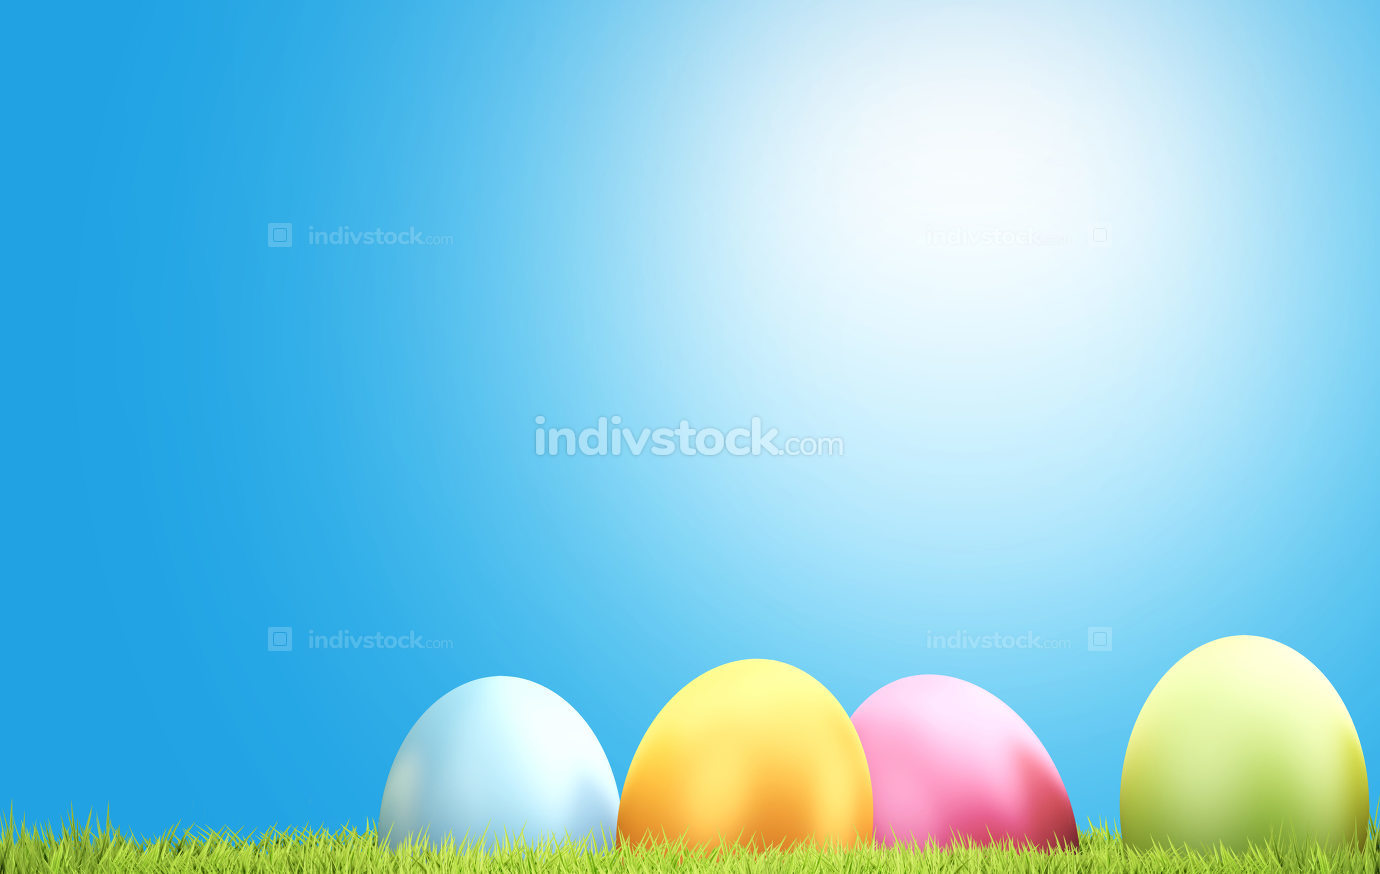 free download: Easter eggs and green grass 3d rendering background